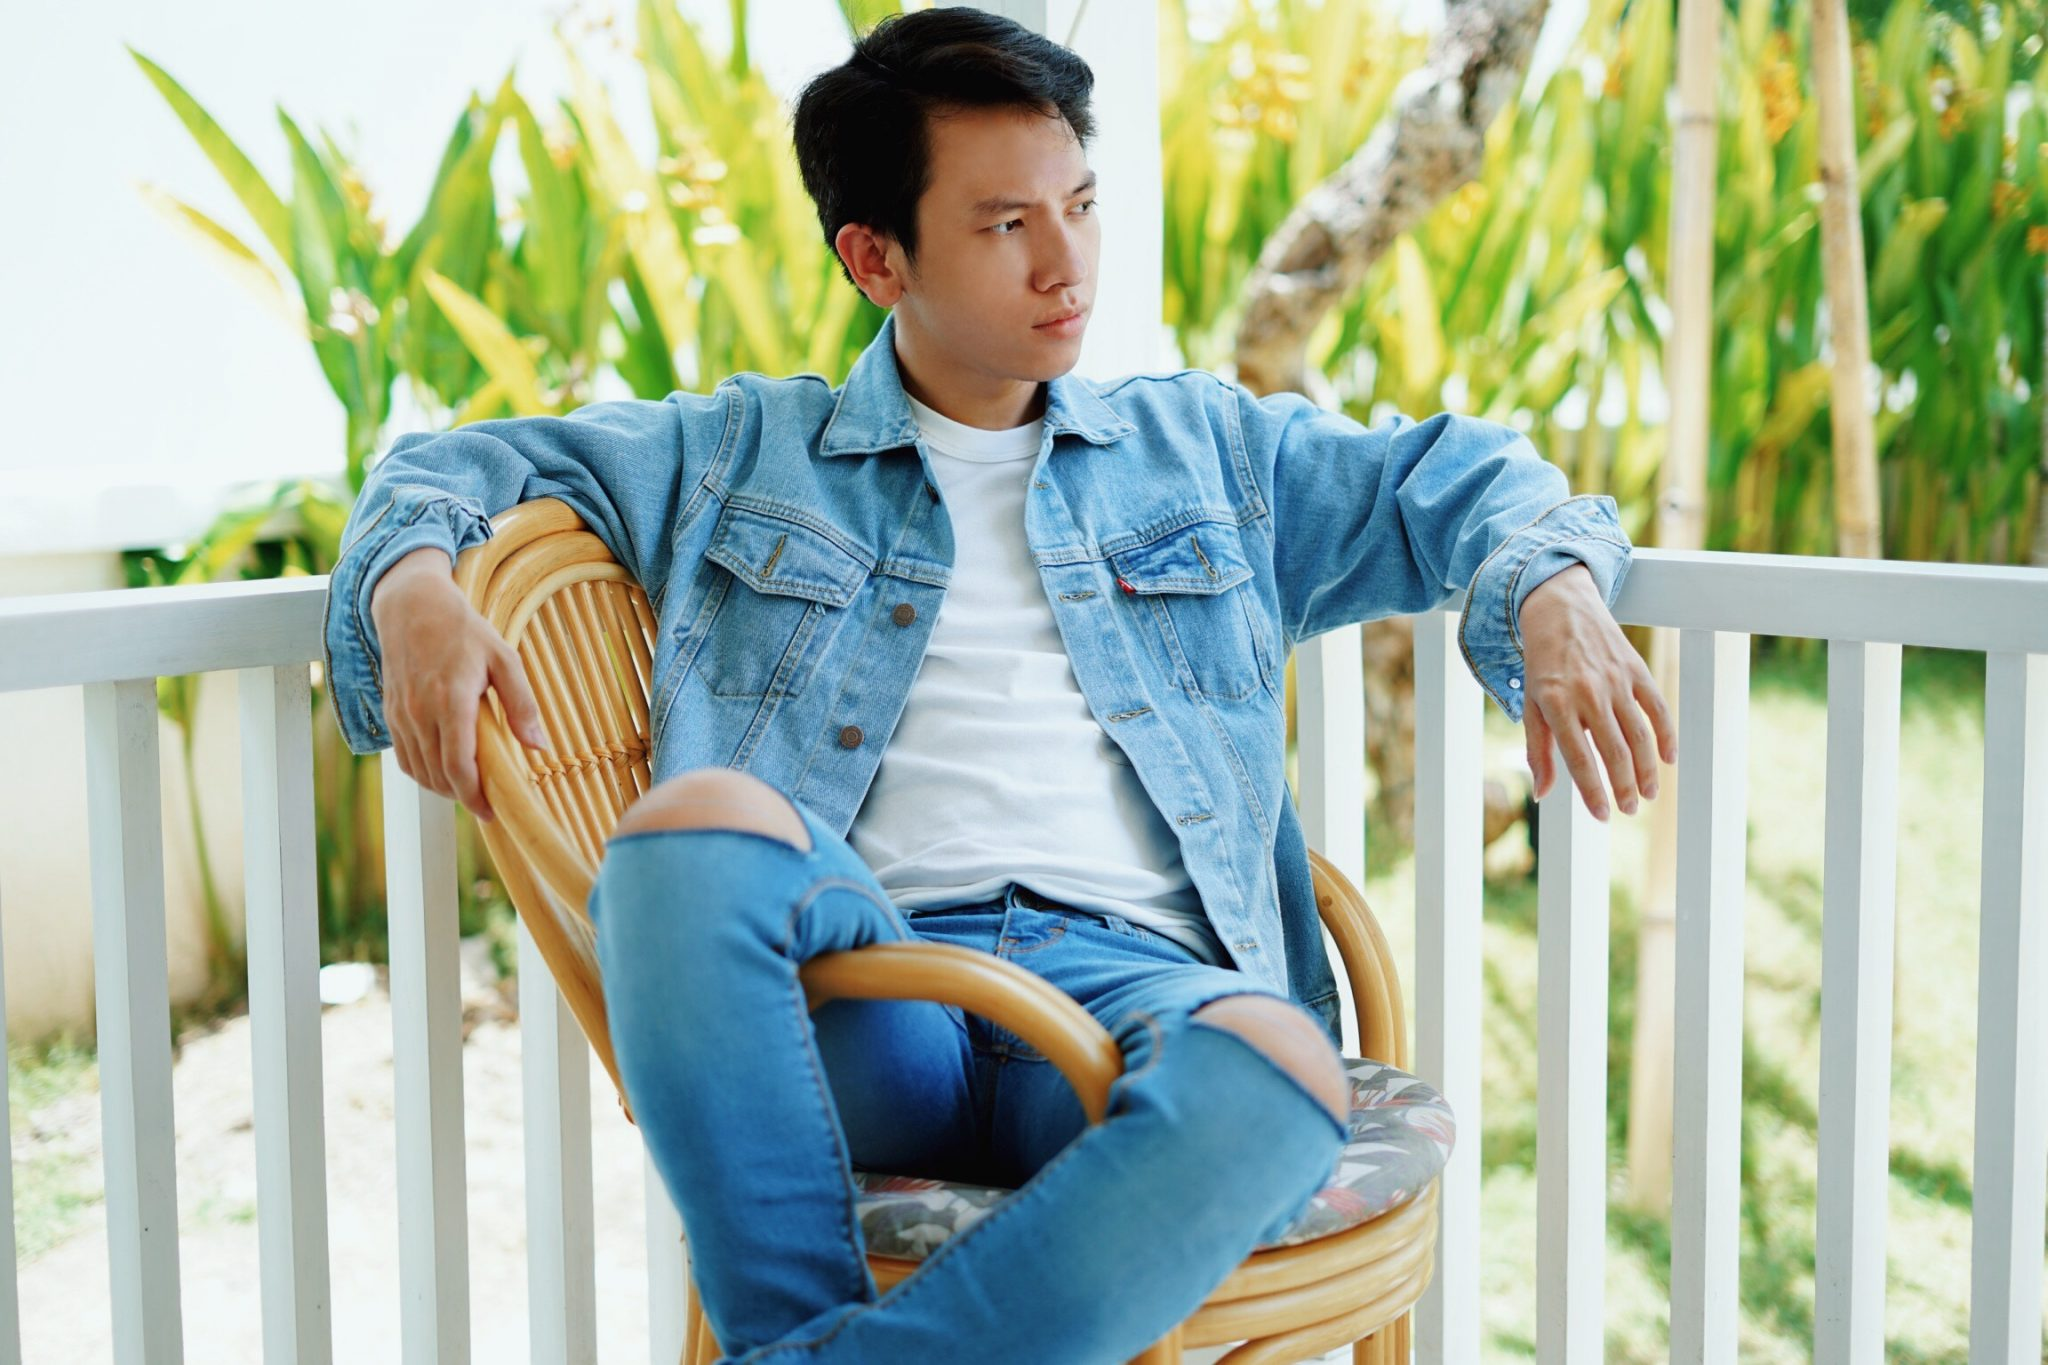 Hendrawithjaya.com Hendra Wijaya Indonesian Fashion Blogger Pria Indonesia How to Style Your Denim Jacket Ripped Jeans Style